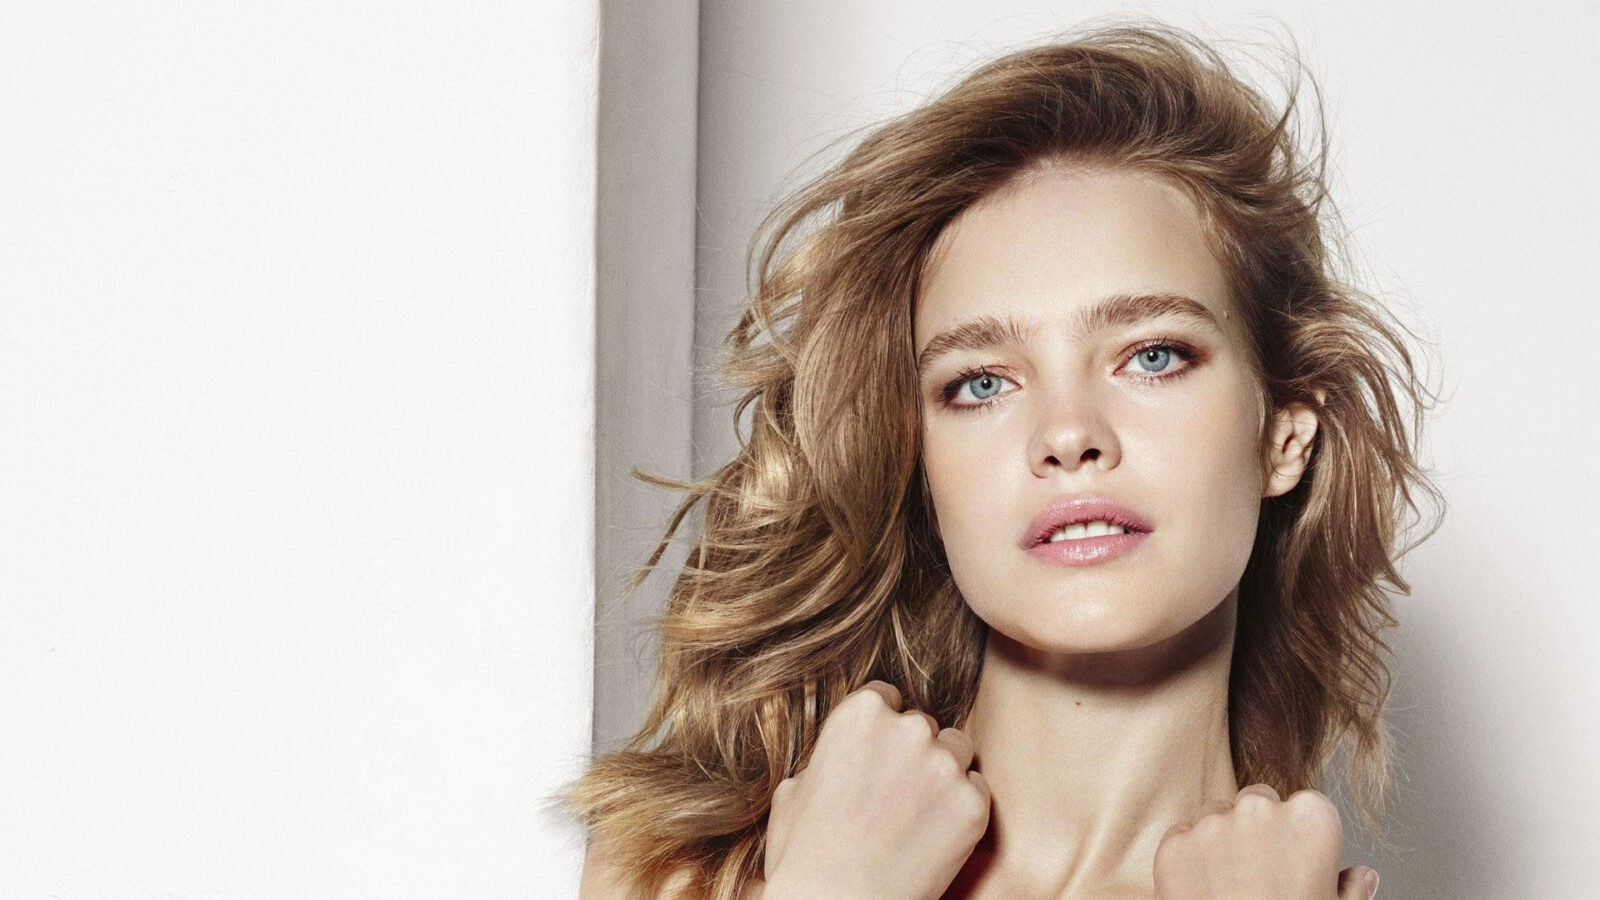 light color background Natalia Vodianova with curly hairstyle. 1080p